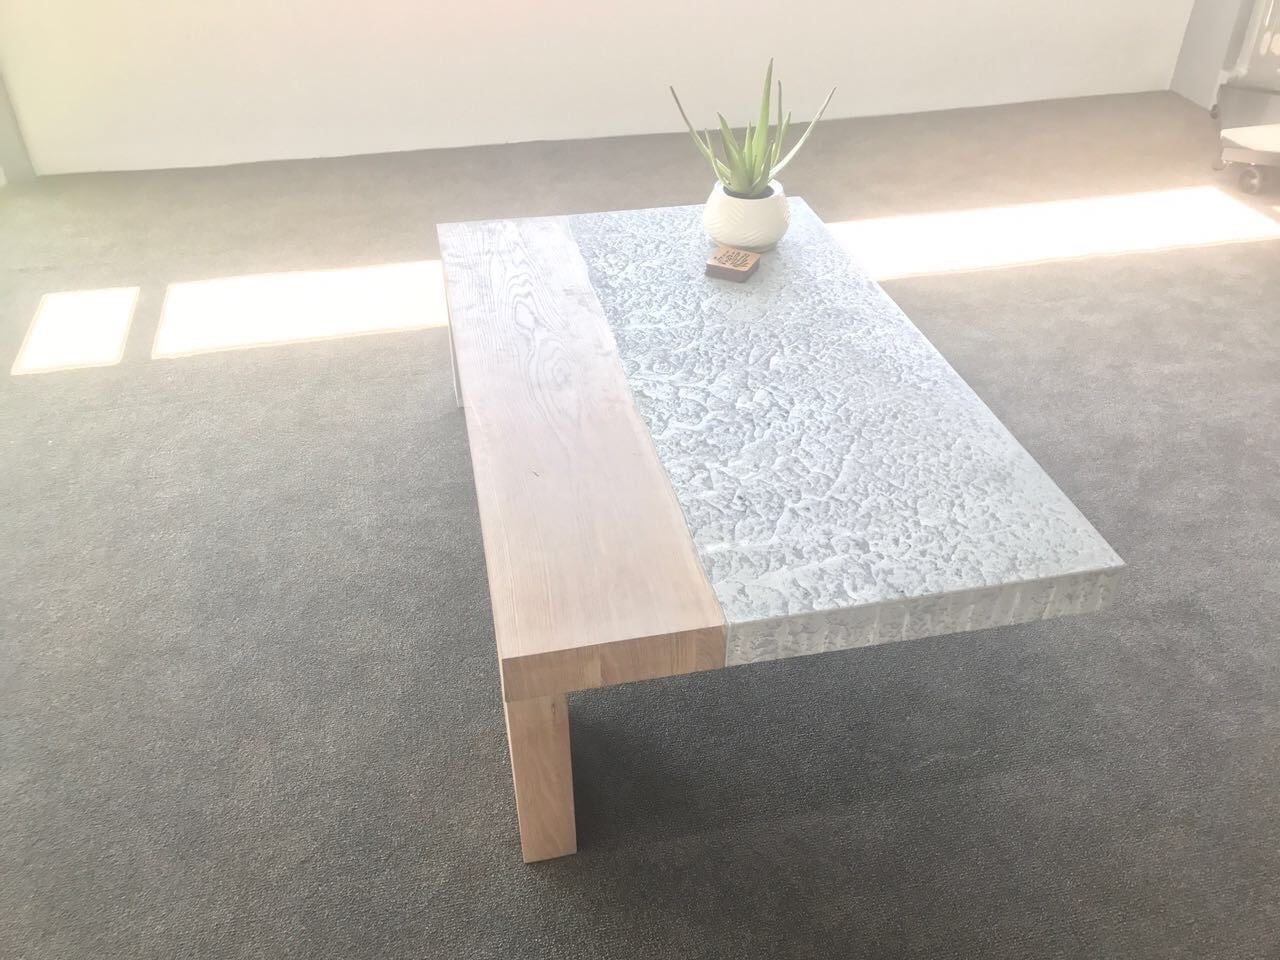 Coffee Table suspended with Wood and Concrete Image